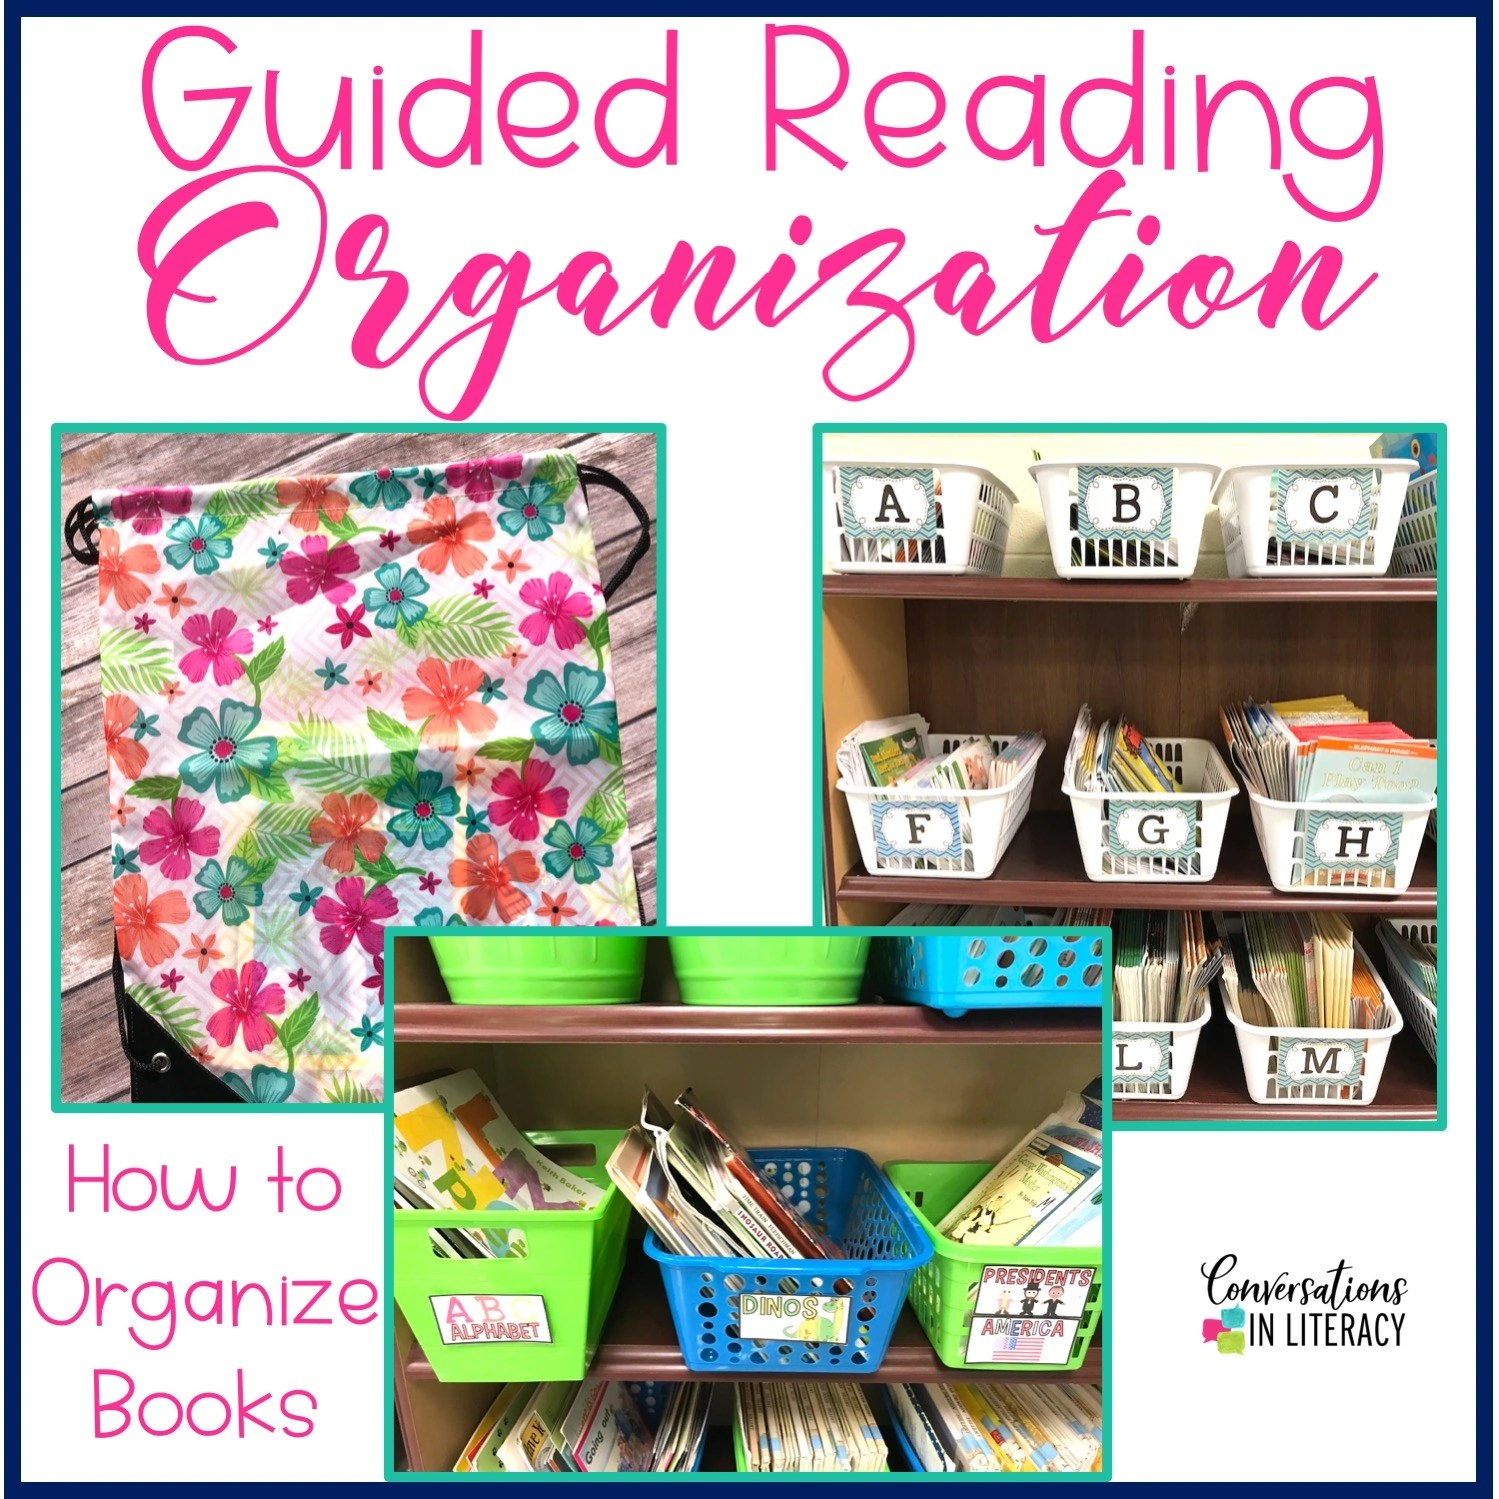 Guided Reading Organization Tips